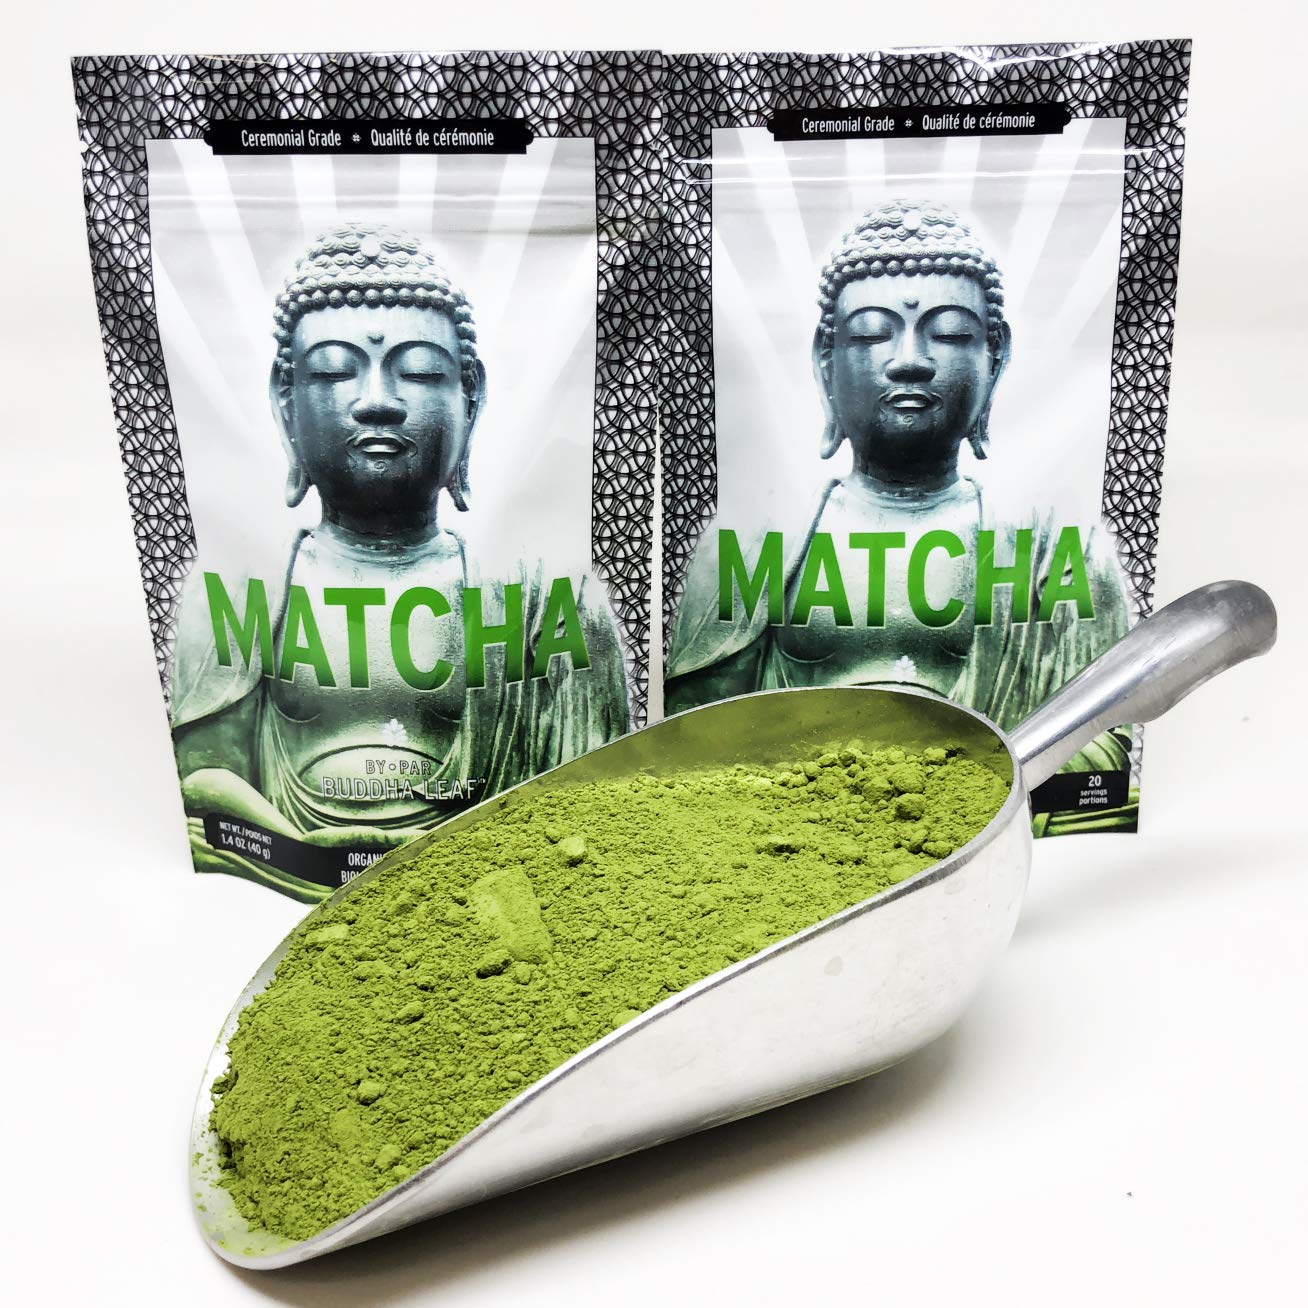 Matcha Green Tea Powder Ceremonial Grade - Japan's highest grade green tea – Made from Gyokuro: Organic, Gluten Free, Unsweetened & Sugar Free. The ideal pure green tea to be served by itself.